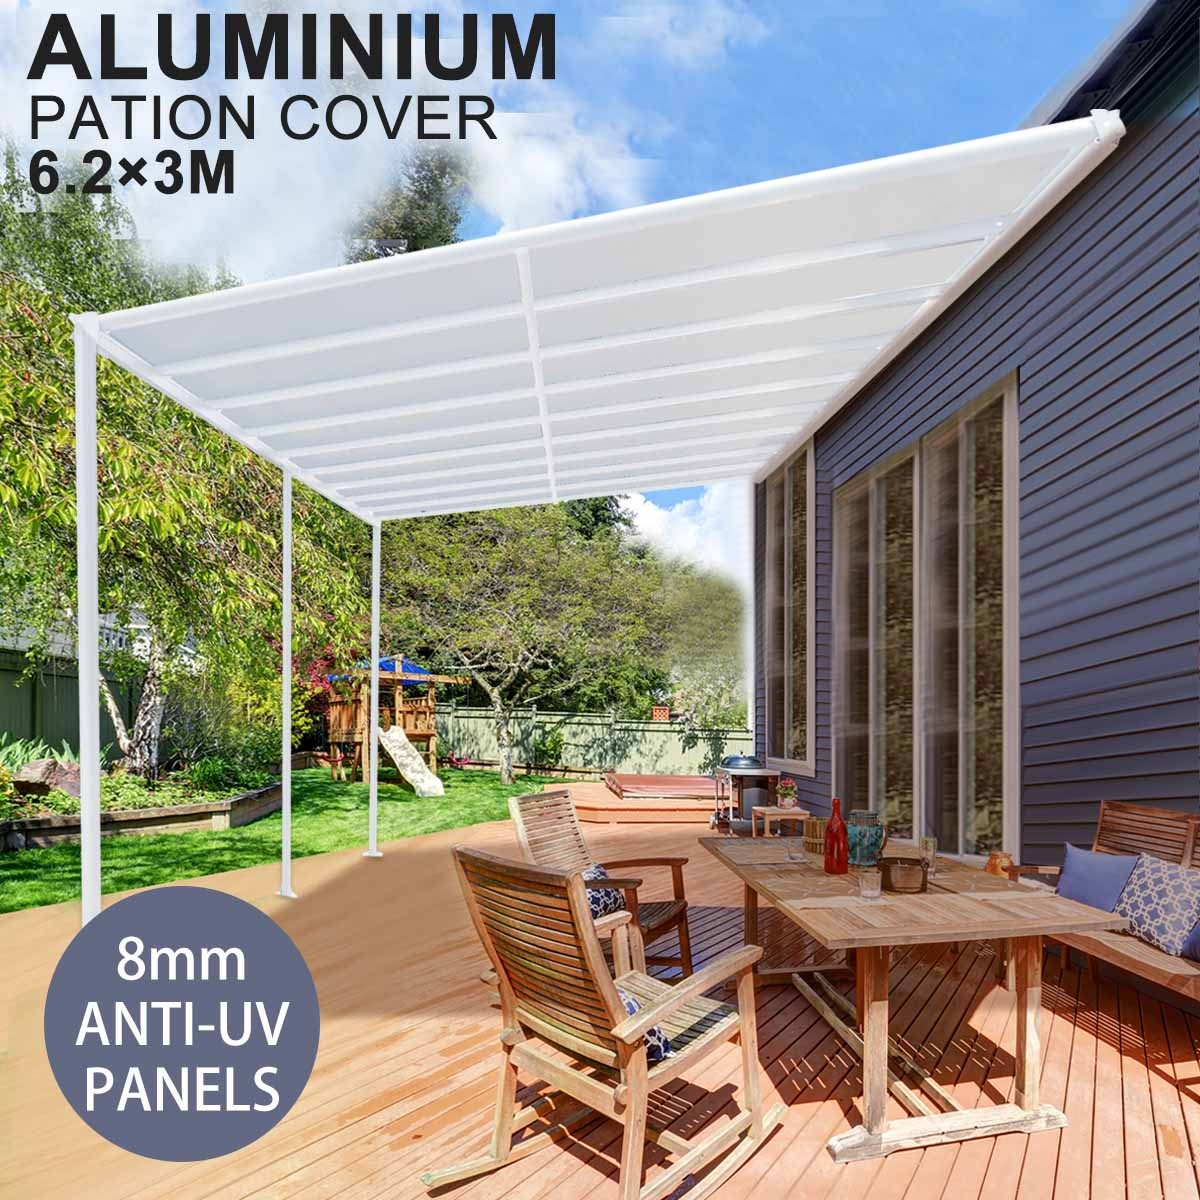 DIY Pergola Kit Outdoor Patio Deck Cover Roof 6.2 x 3m Verandah Aluminum - Wholesales Direct  sc 1 st  Wholesales Direct & DIY Pergola Kit Outdoor Patio Deck Cover Roof 6.2 x 3m Verandah ...